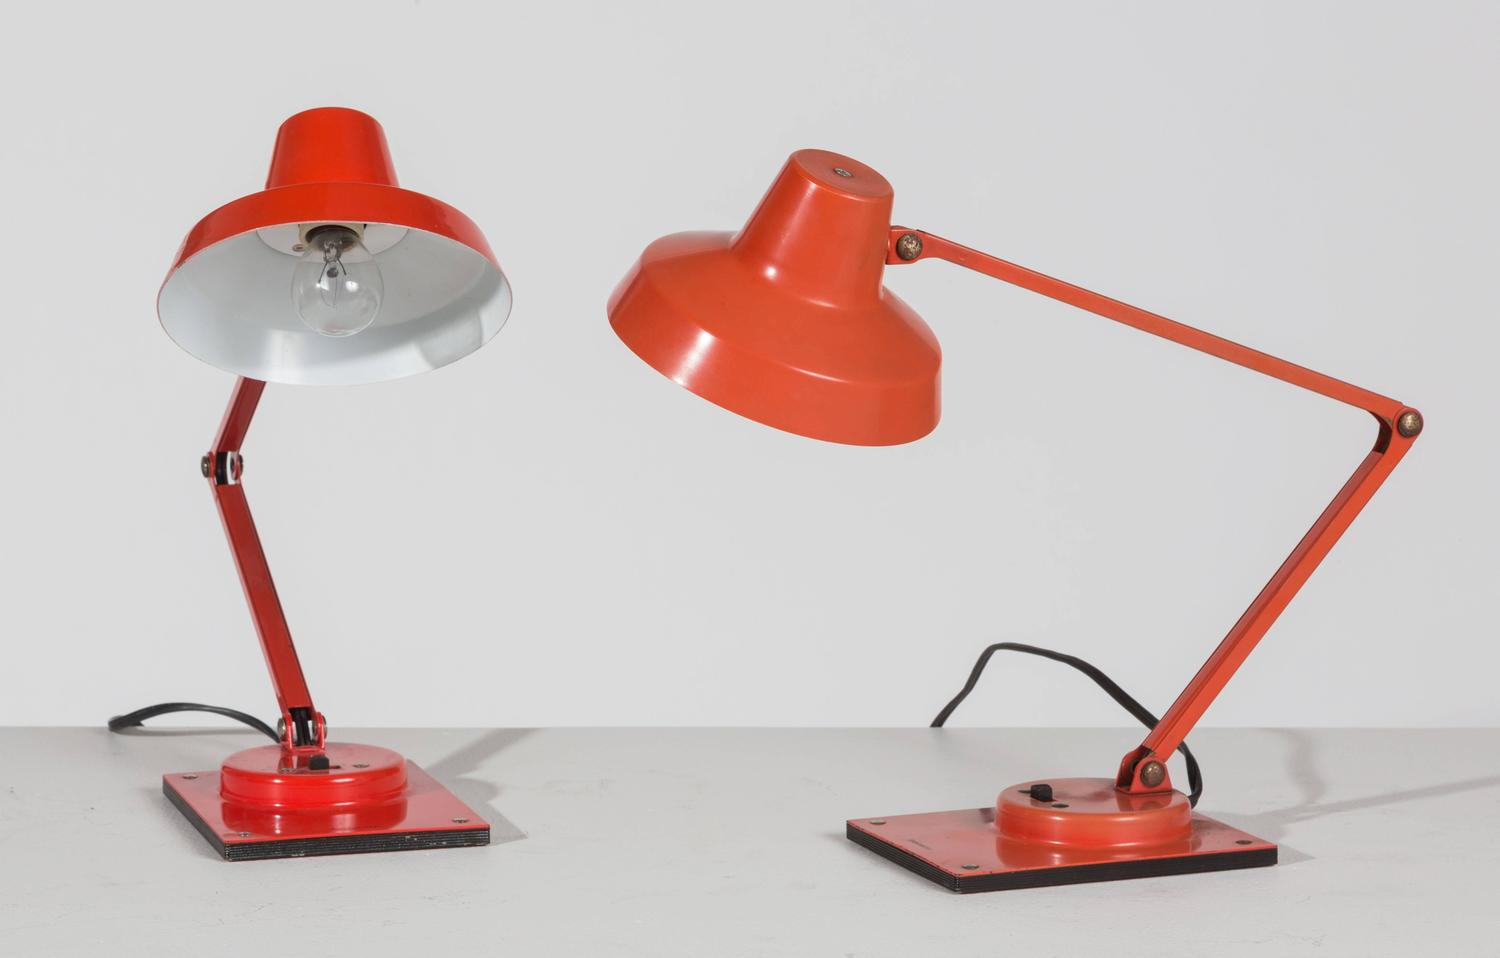 Tensor lamps - typical reading lamps with flexible heads | Warisan ...